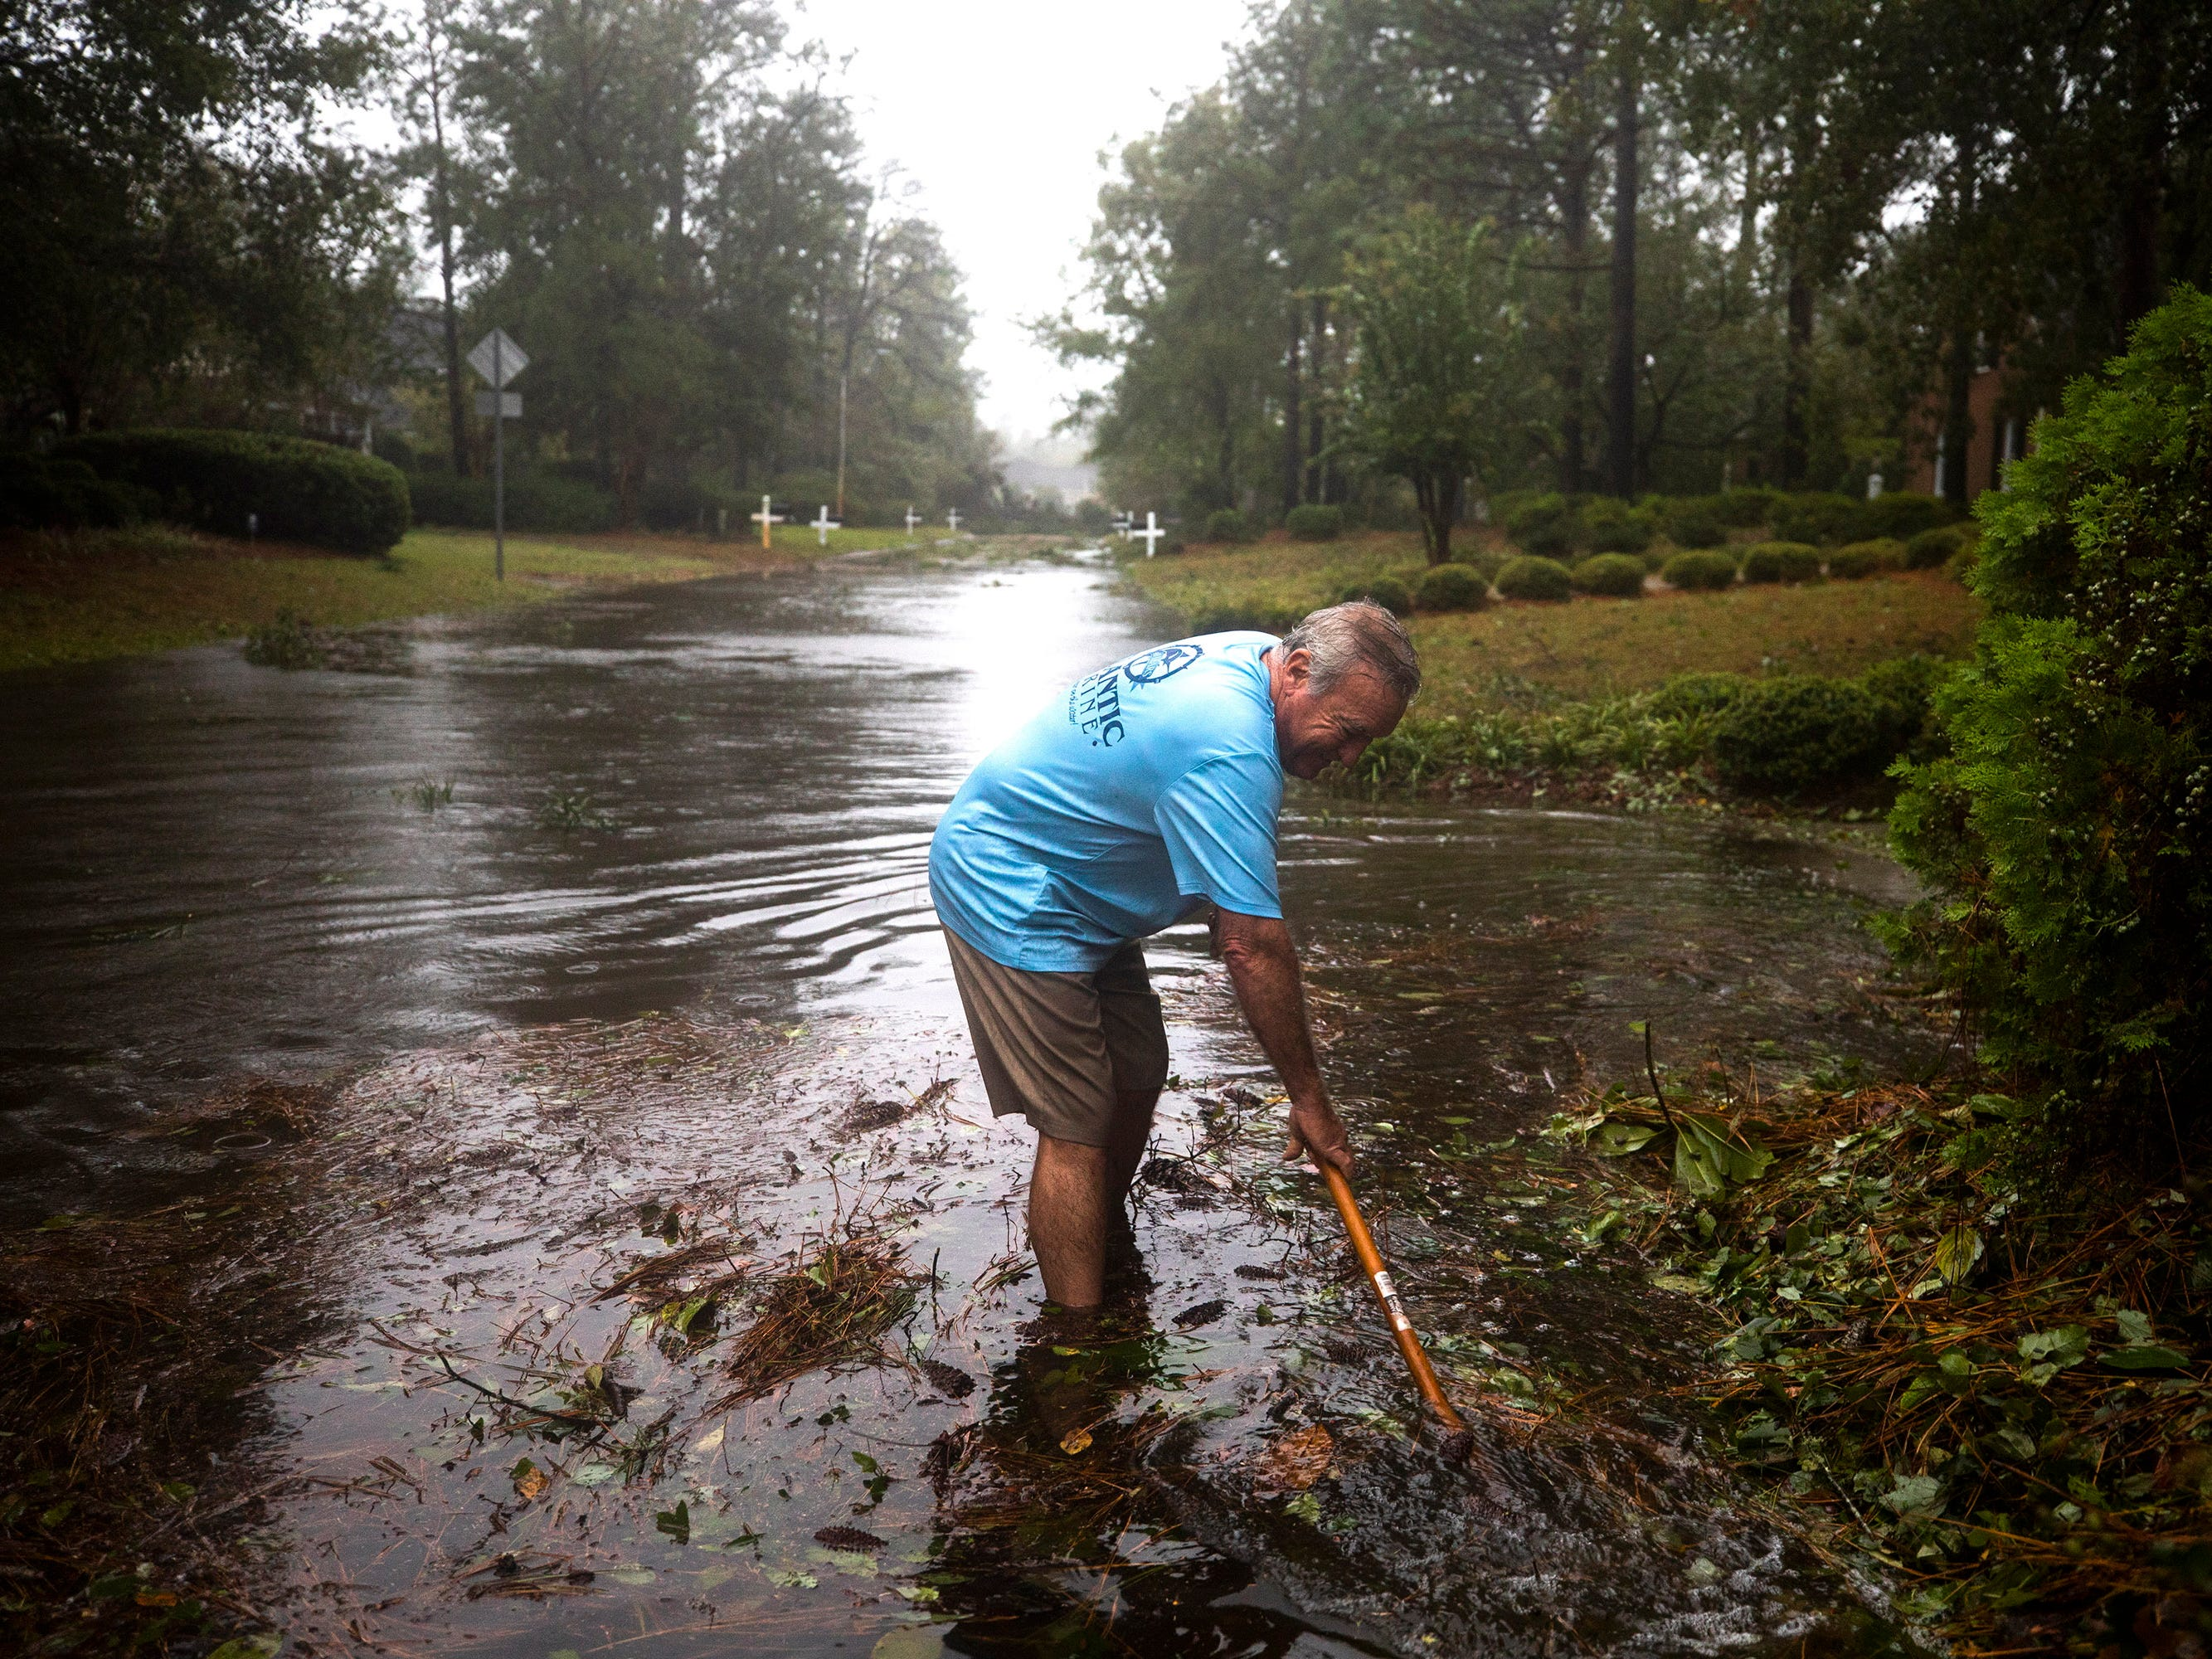 Barry Shape attempts to clear debris from a storm drain as Hurricane Florence comes ashore in Wilmington, N.C. Sept. 14, 2018.